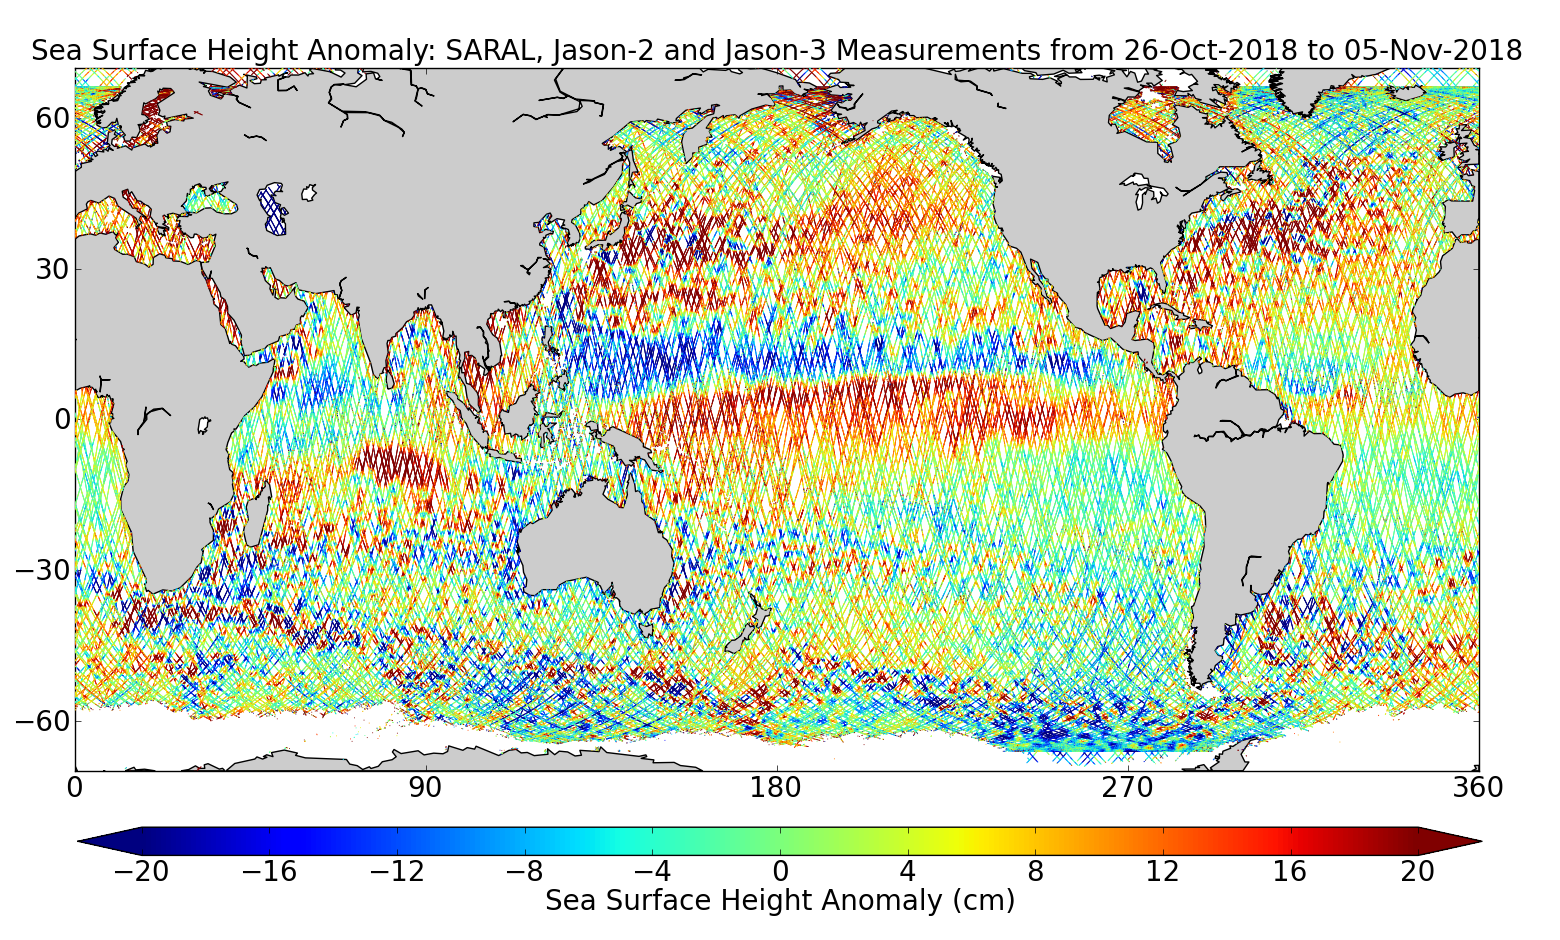 Sea Surface Height Anomaly: SARAL, Jason-2 and Jason-3 Measurements from 26-Oct-2018 to 05-Nov-2018